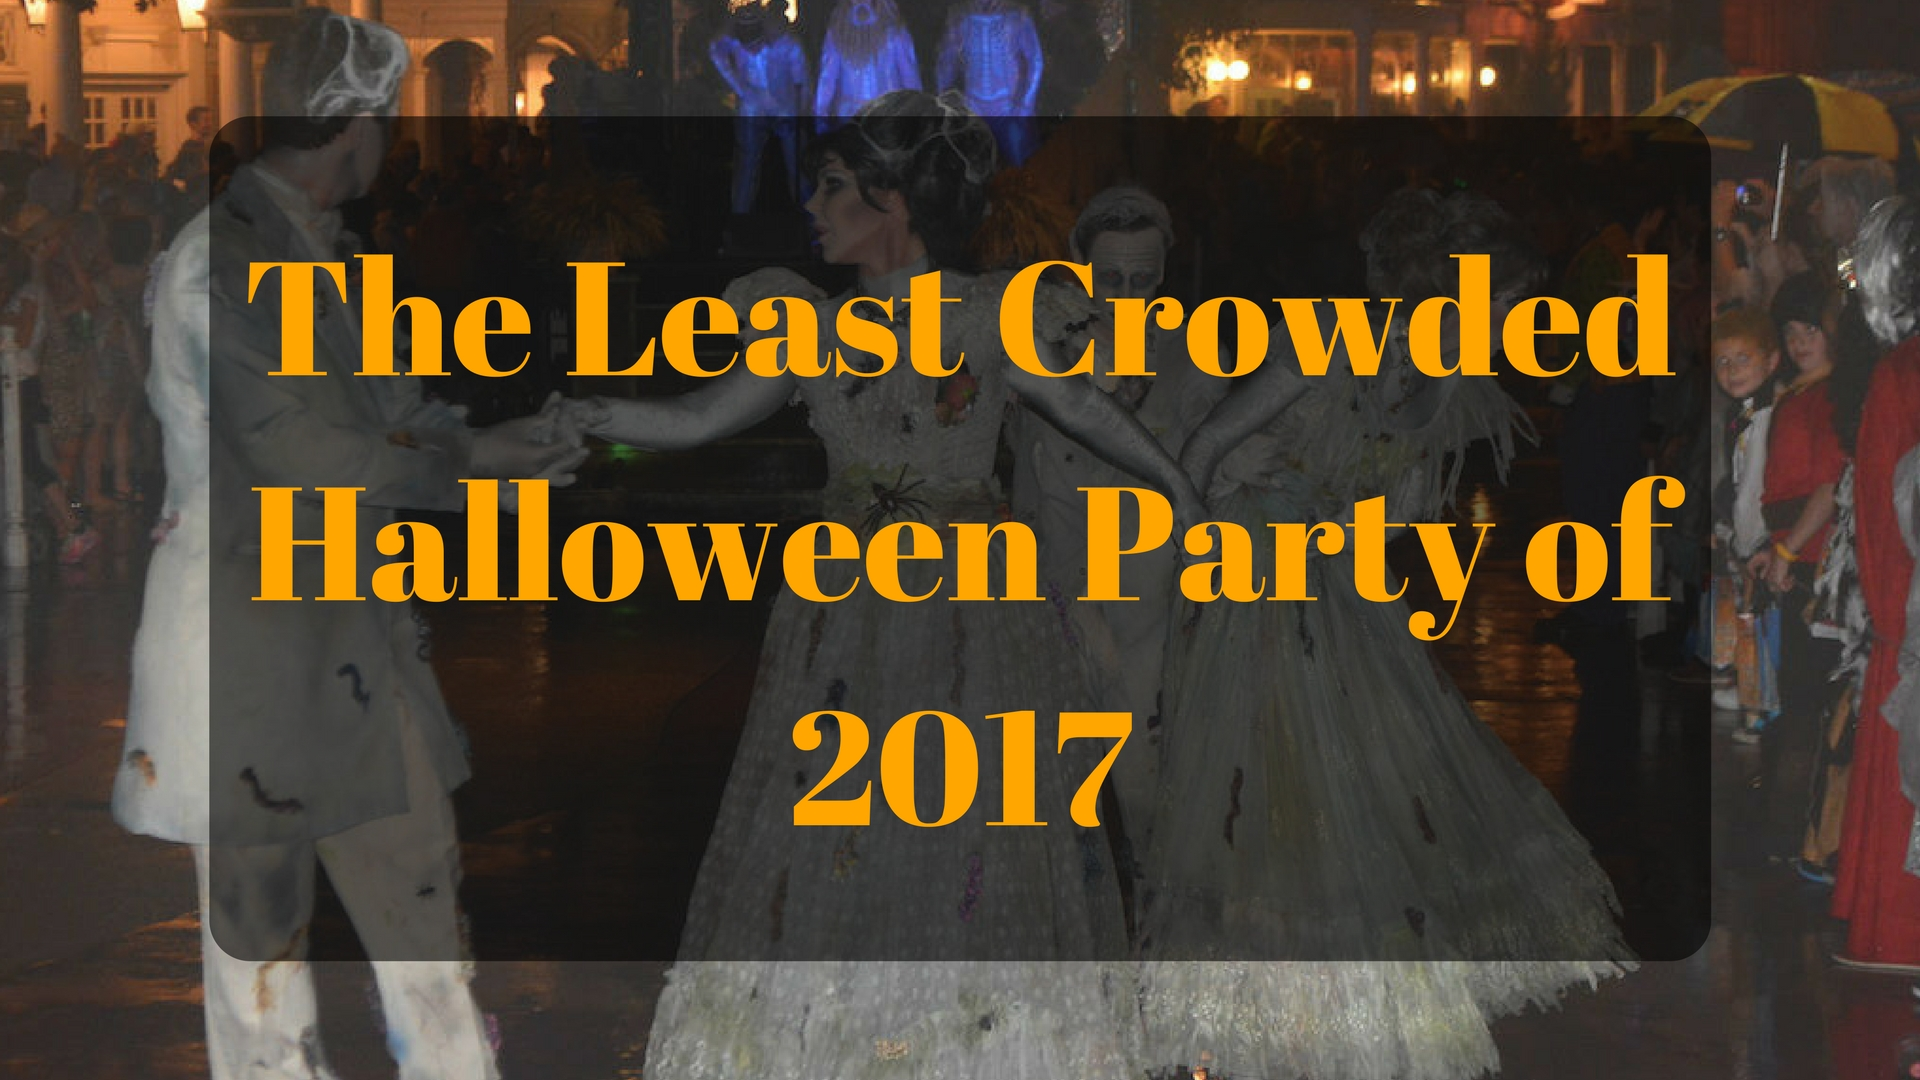 find the least crowded halloween party in 2017 - touringplans blog